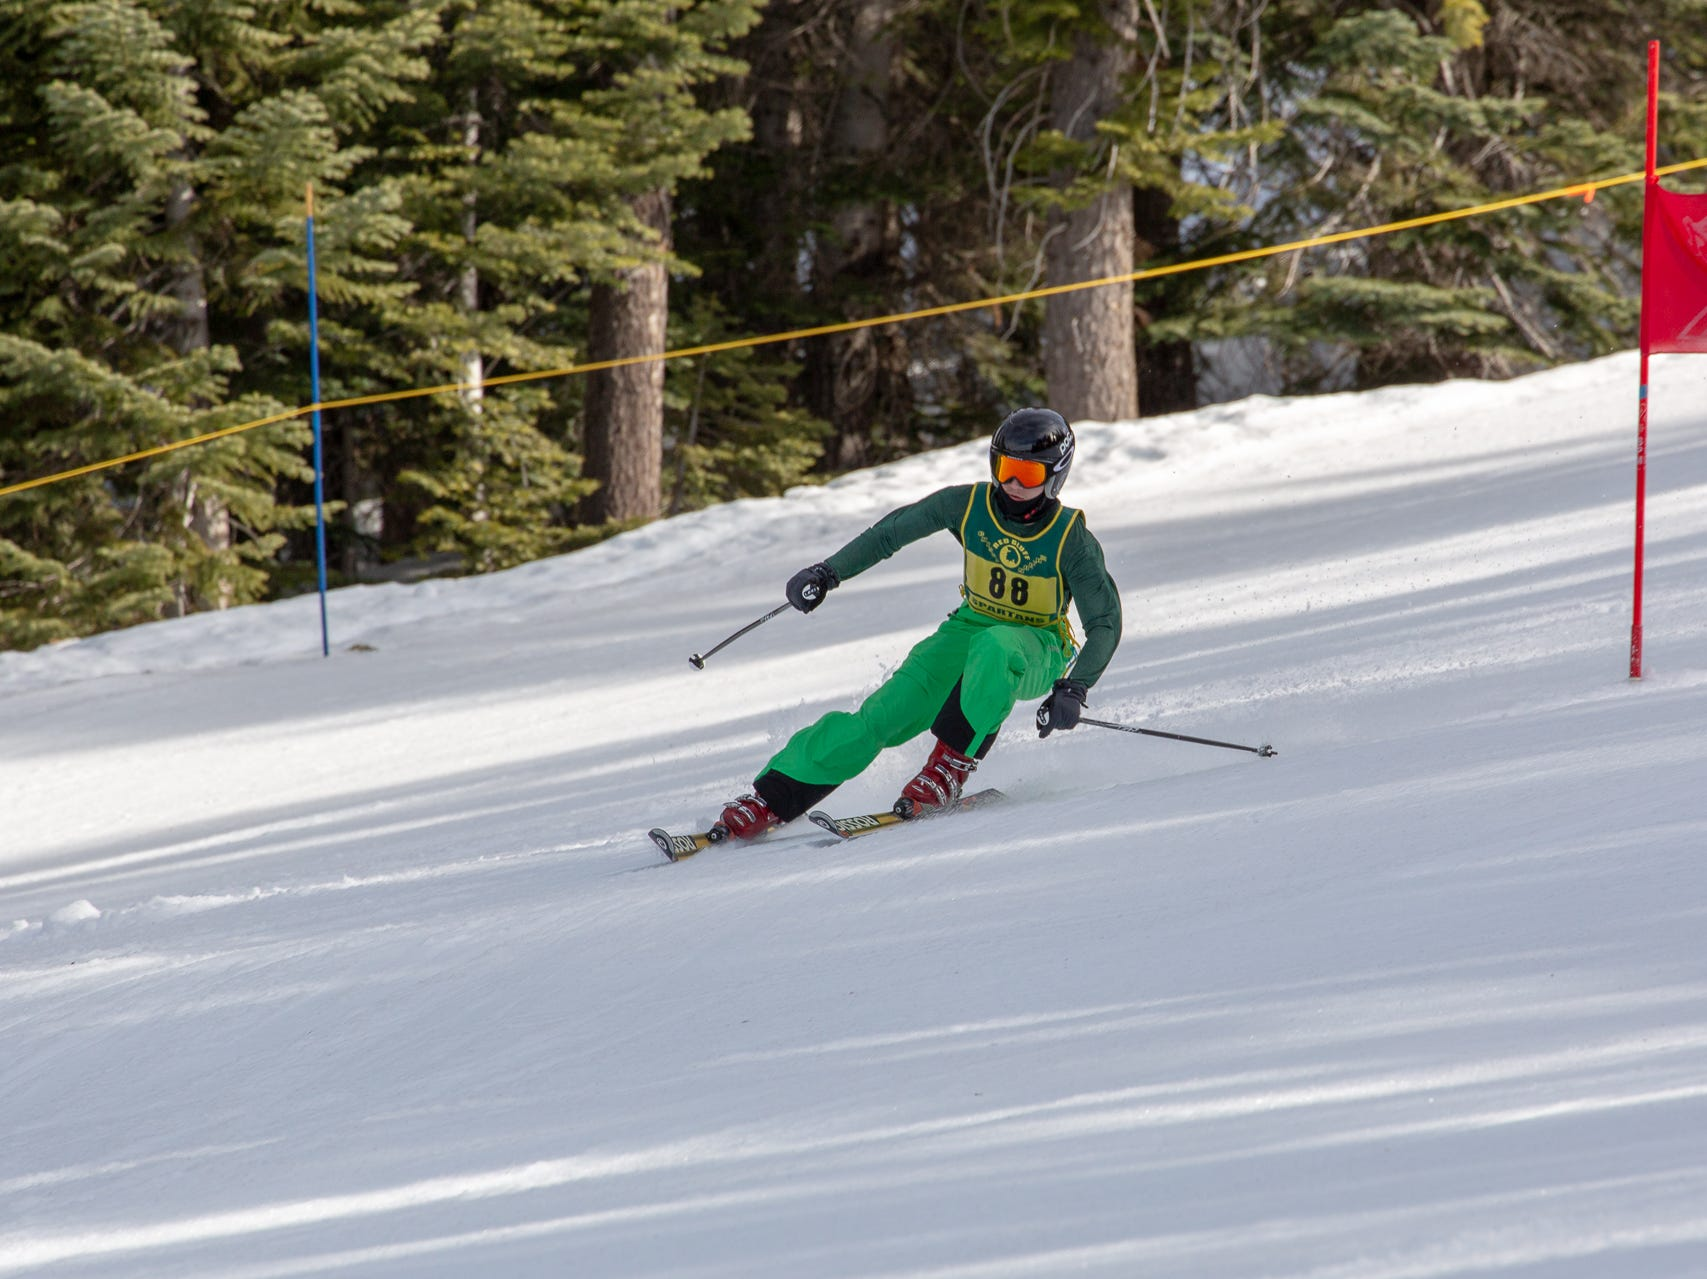 Logan Carver of Red Bluff races in the third high school ski meet of 2019 on Monday, Jan. 28 at Mt. Shasta Ski Park.